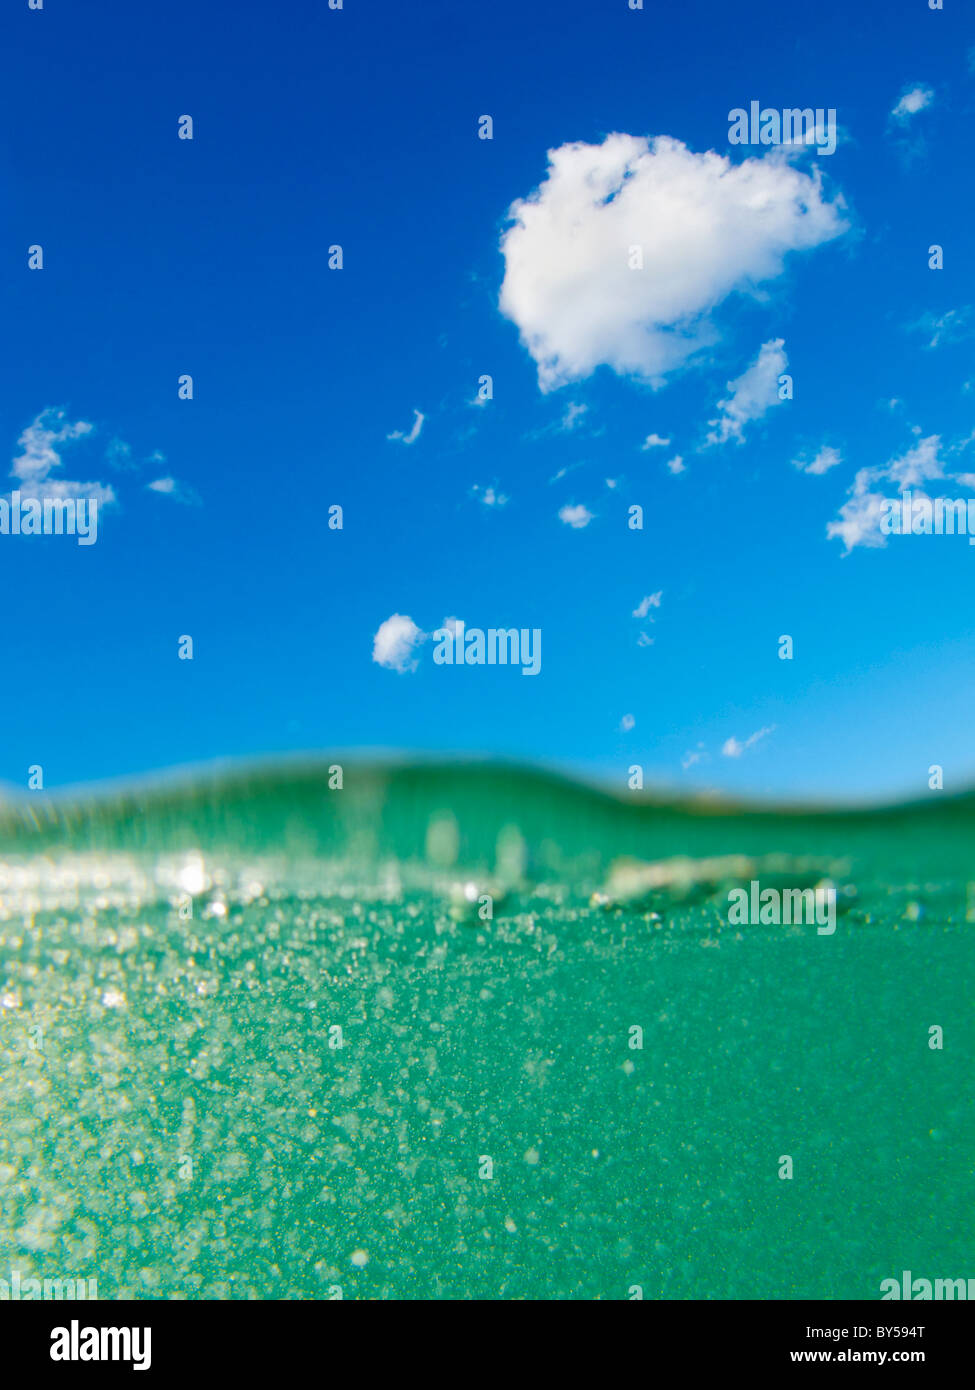 View of the sea with green water and blue skies - Stock Image